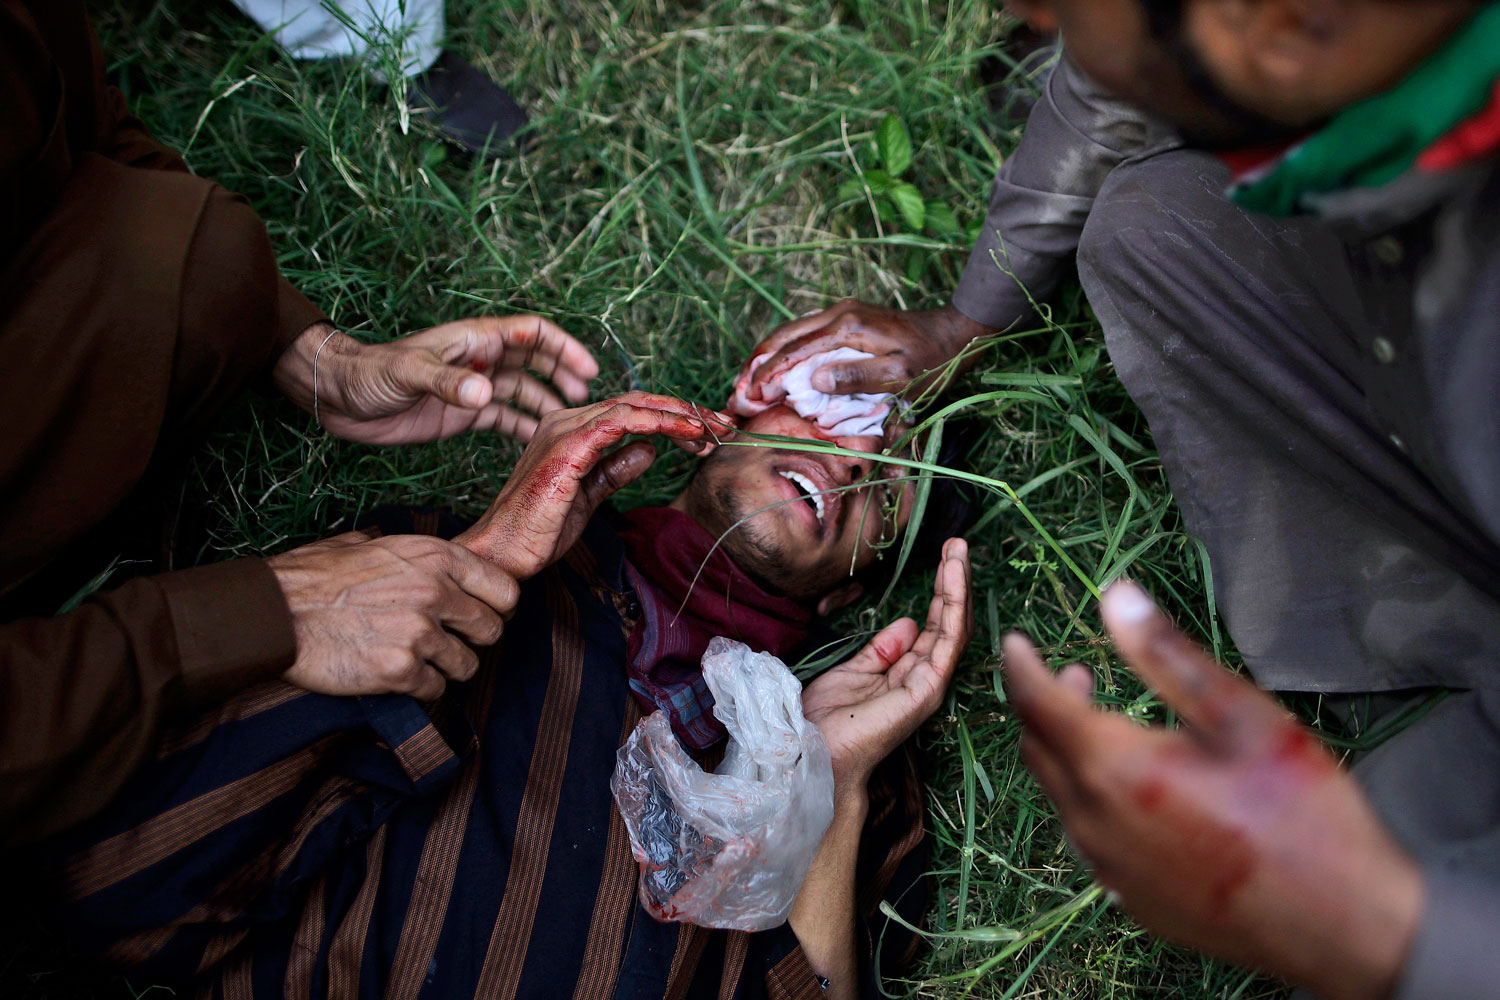 Sept. 21, 2012. A Pakistani protester, wounded in clashes with riot police, is helped by colleagues as they tried to approach the U.S. embassy, during a demonstrations against an anti-Islam film in Islamabad.